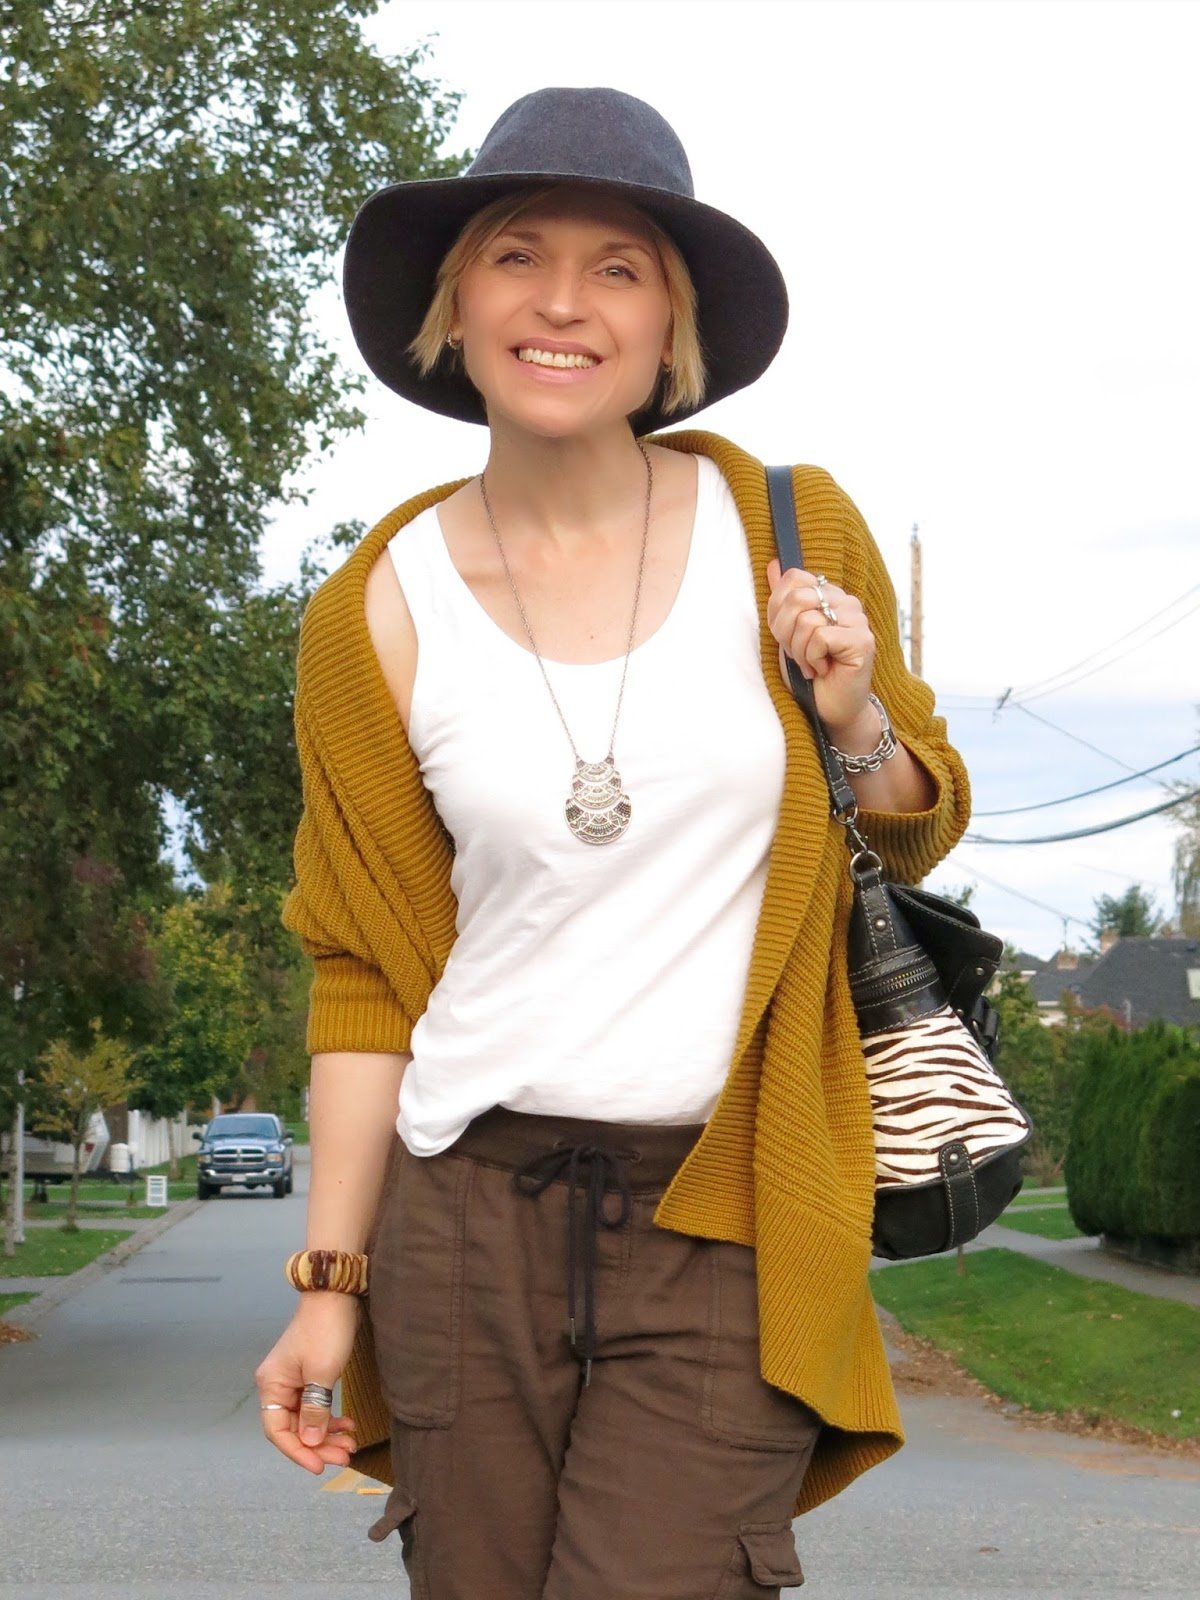 slouchy cargos with a drapey mustard-yellow cardigan, white tank, and floppy hat